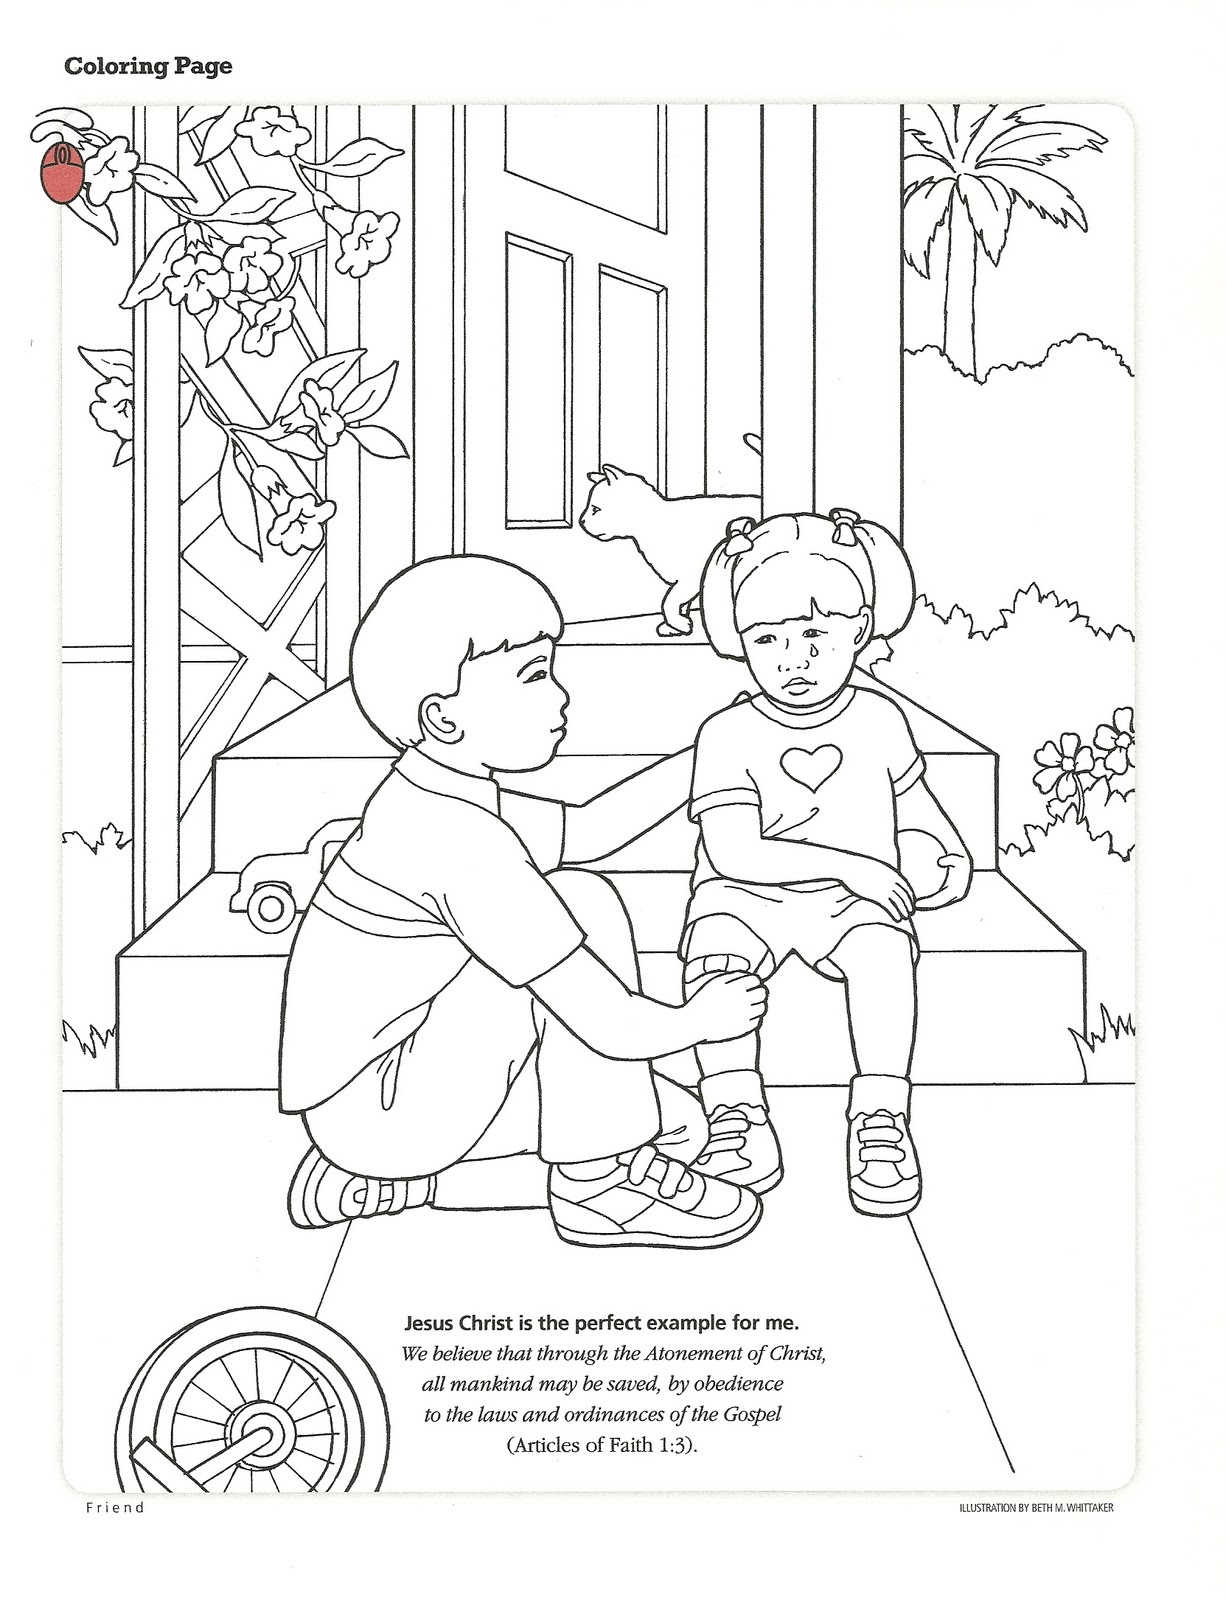 Happy clean living primary 3 lesson 23 for Coloring pages of helping others